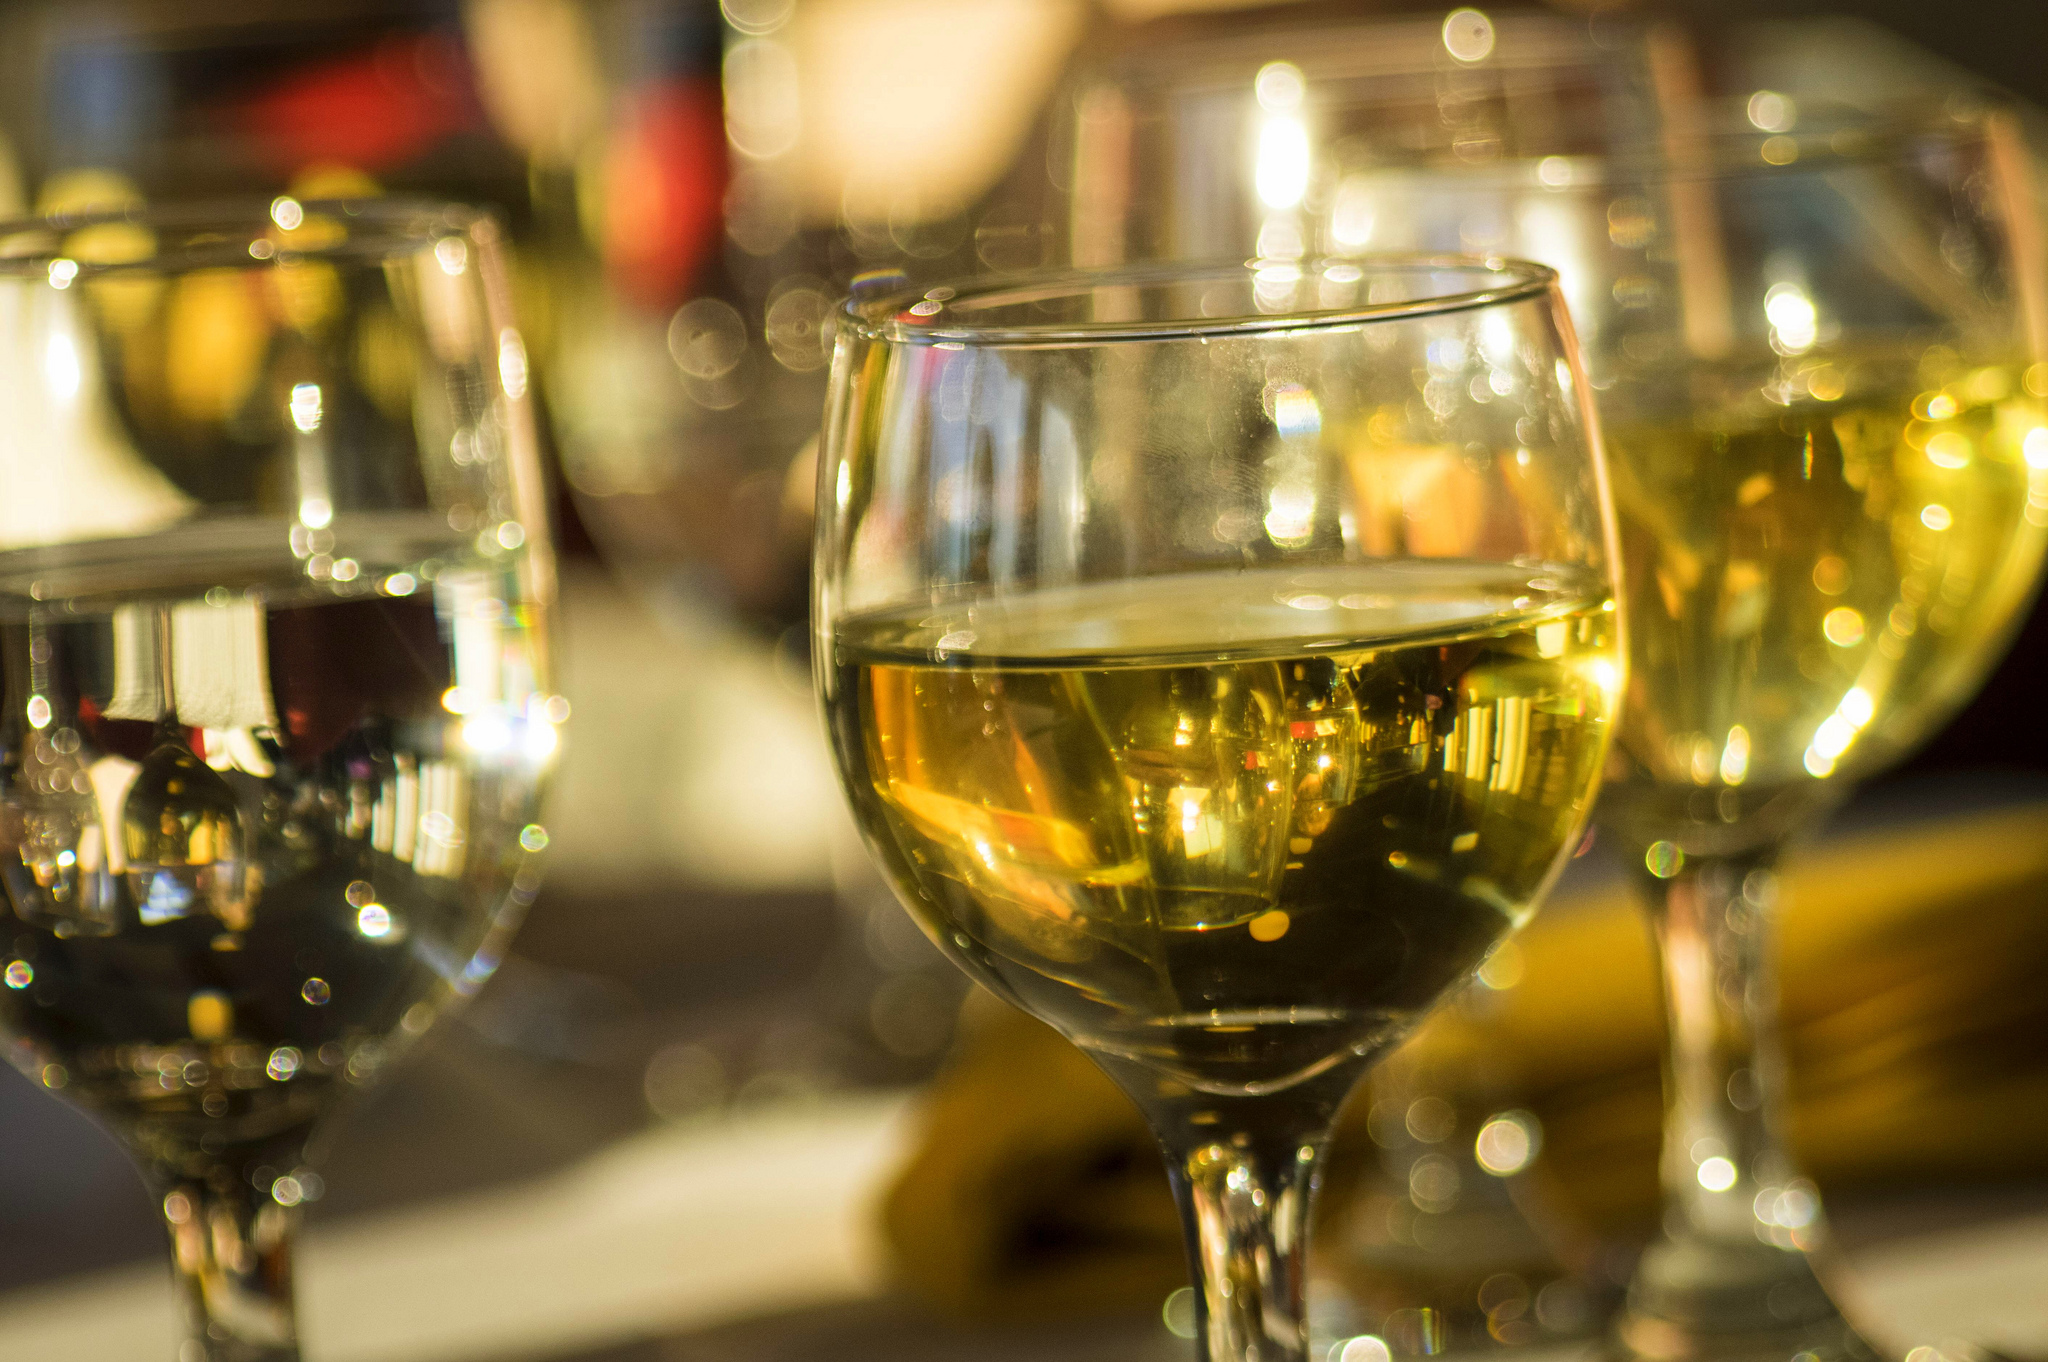 Wine-Fueled Ponzi Scheme Sounds Like a Really Low-Stakes 'Law & Order' Episode